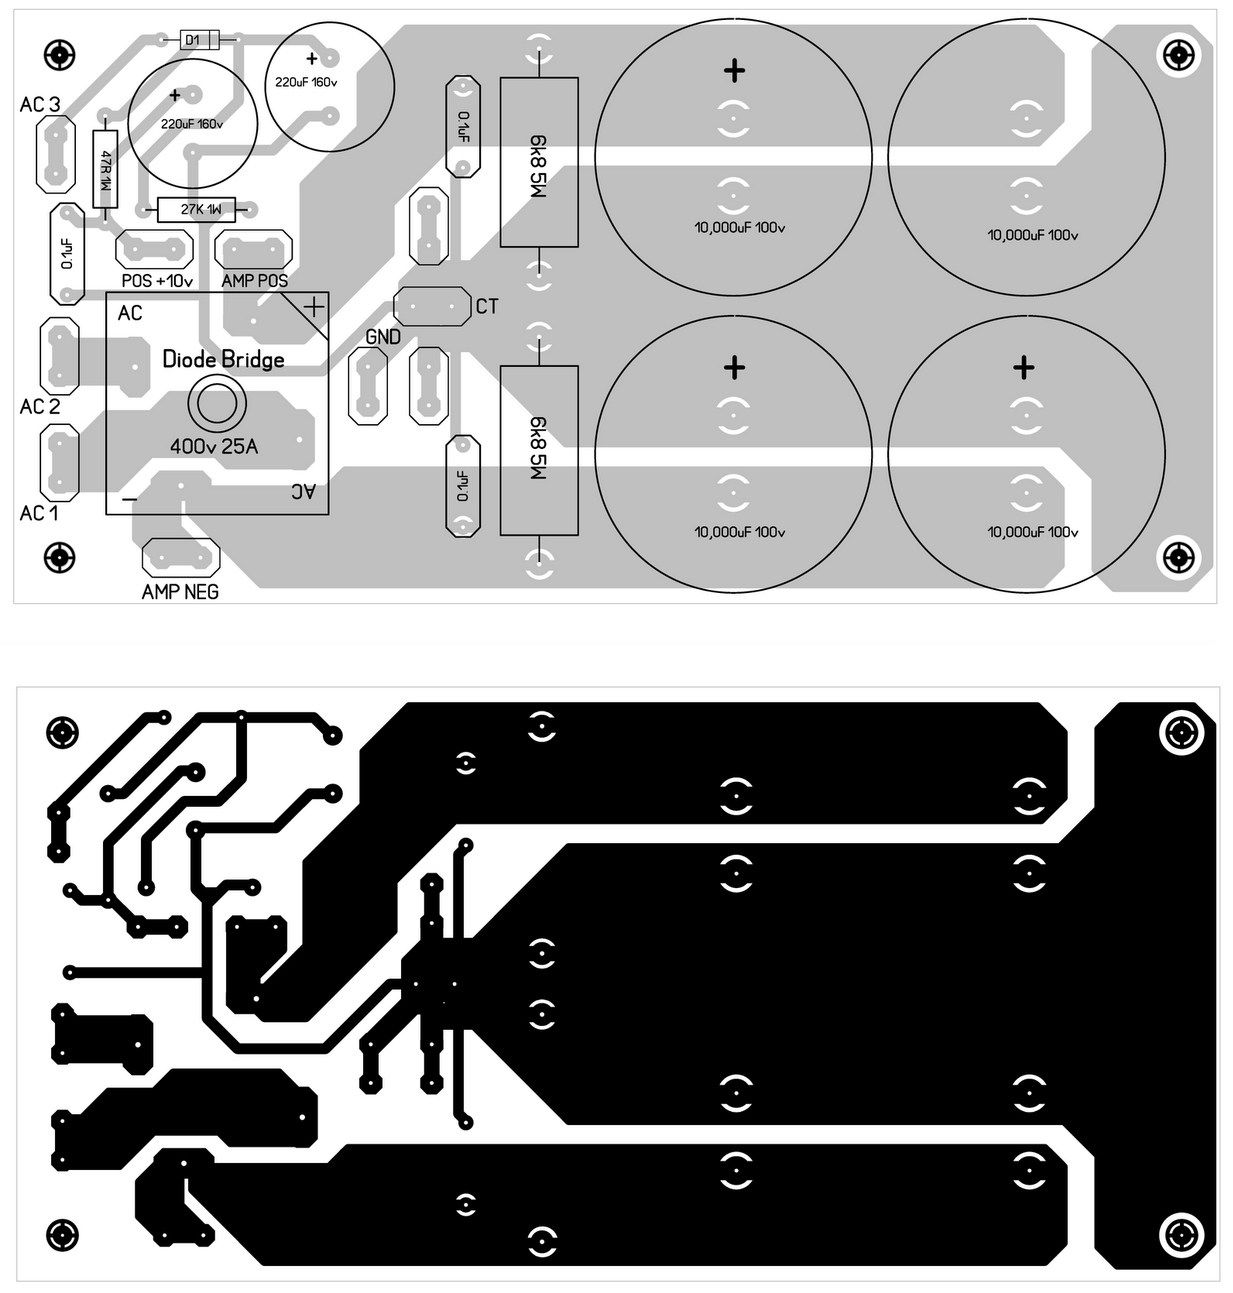 power supply pcb design for 600w mosfet power amplifier [ 1233 x 1293 Pixel ]